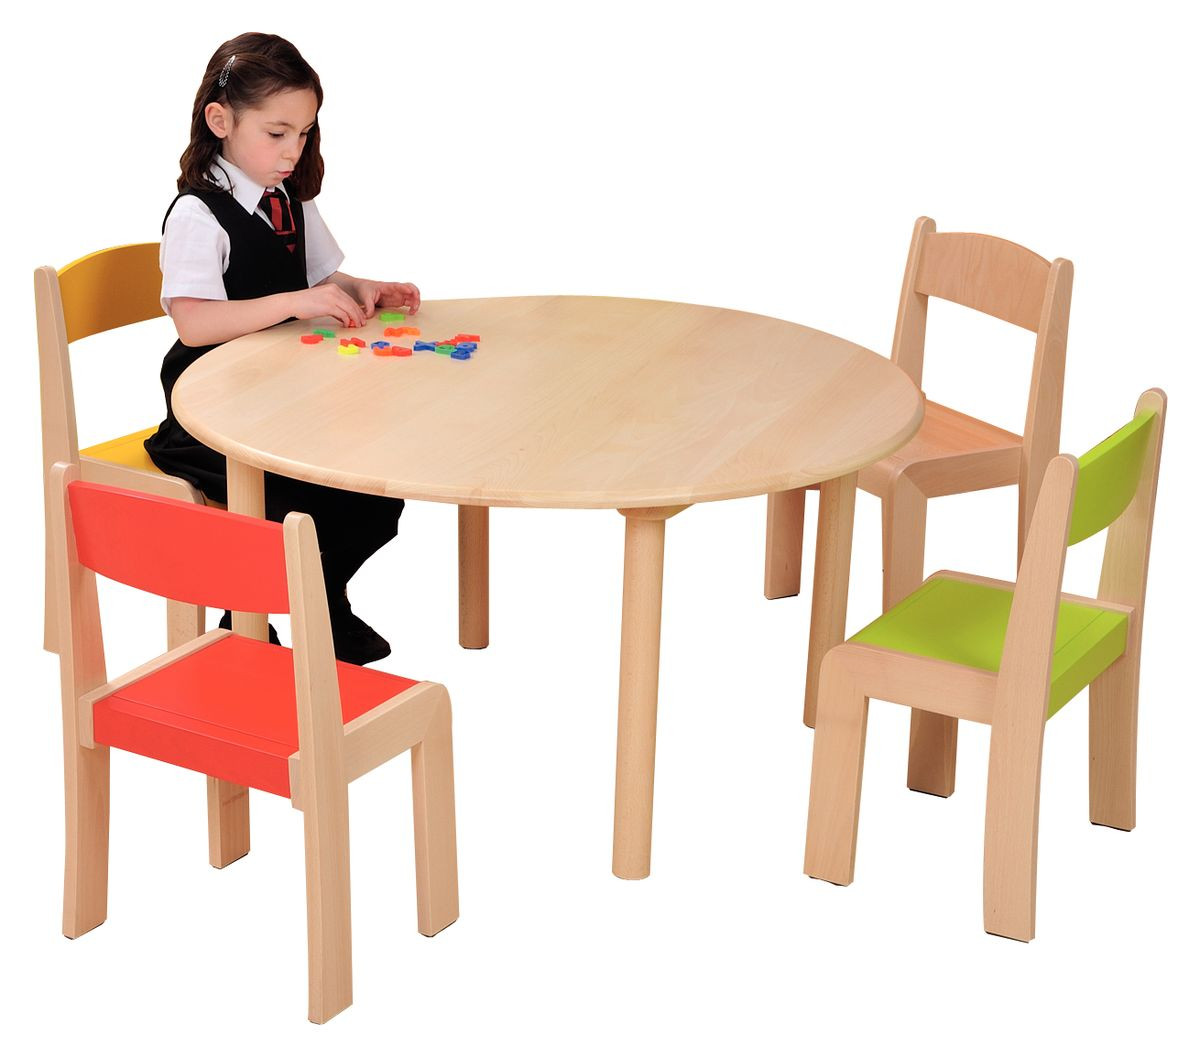 Famous Round Wood Table with Chairs 1200 x 1058 · 108 kB · jpeg